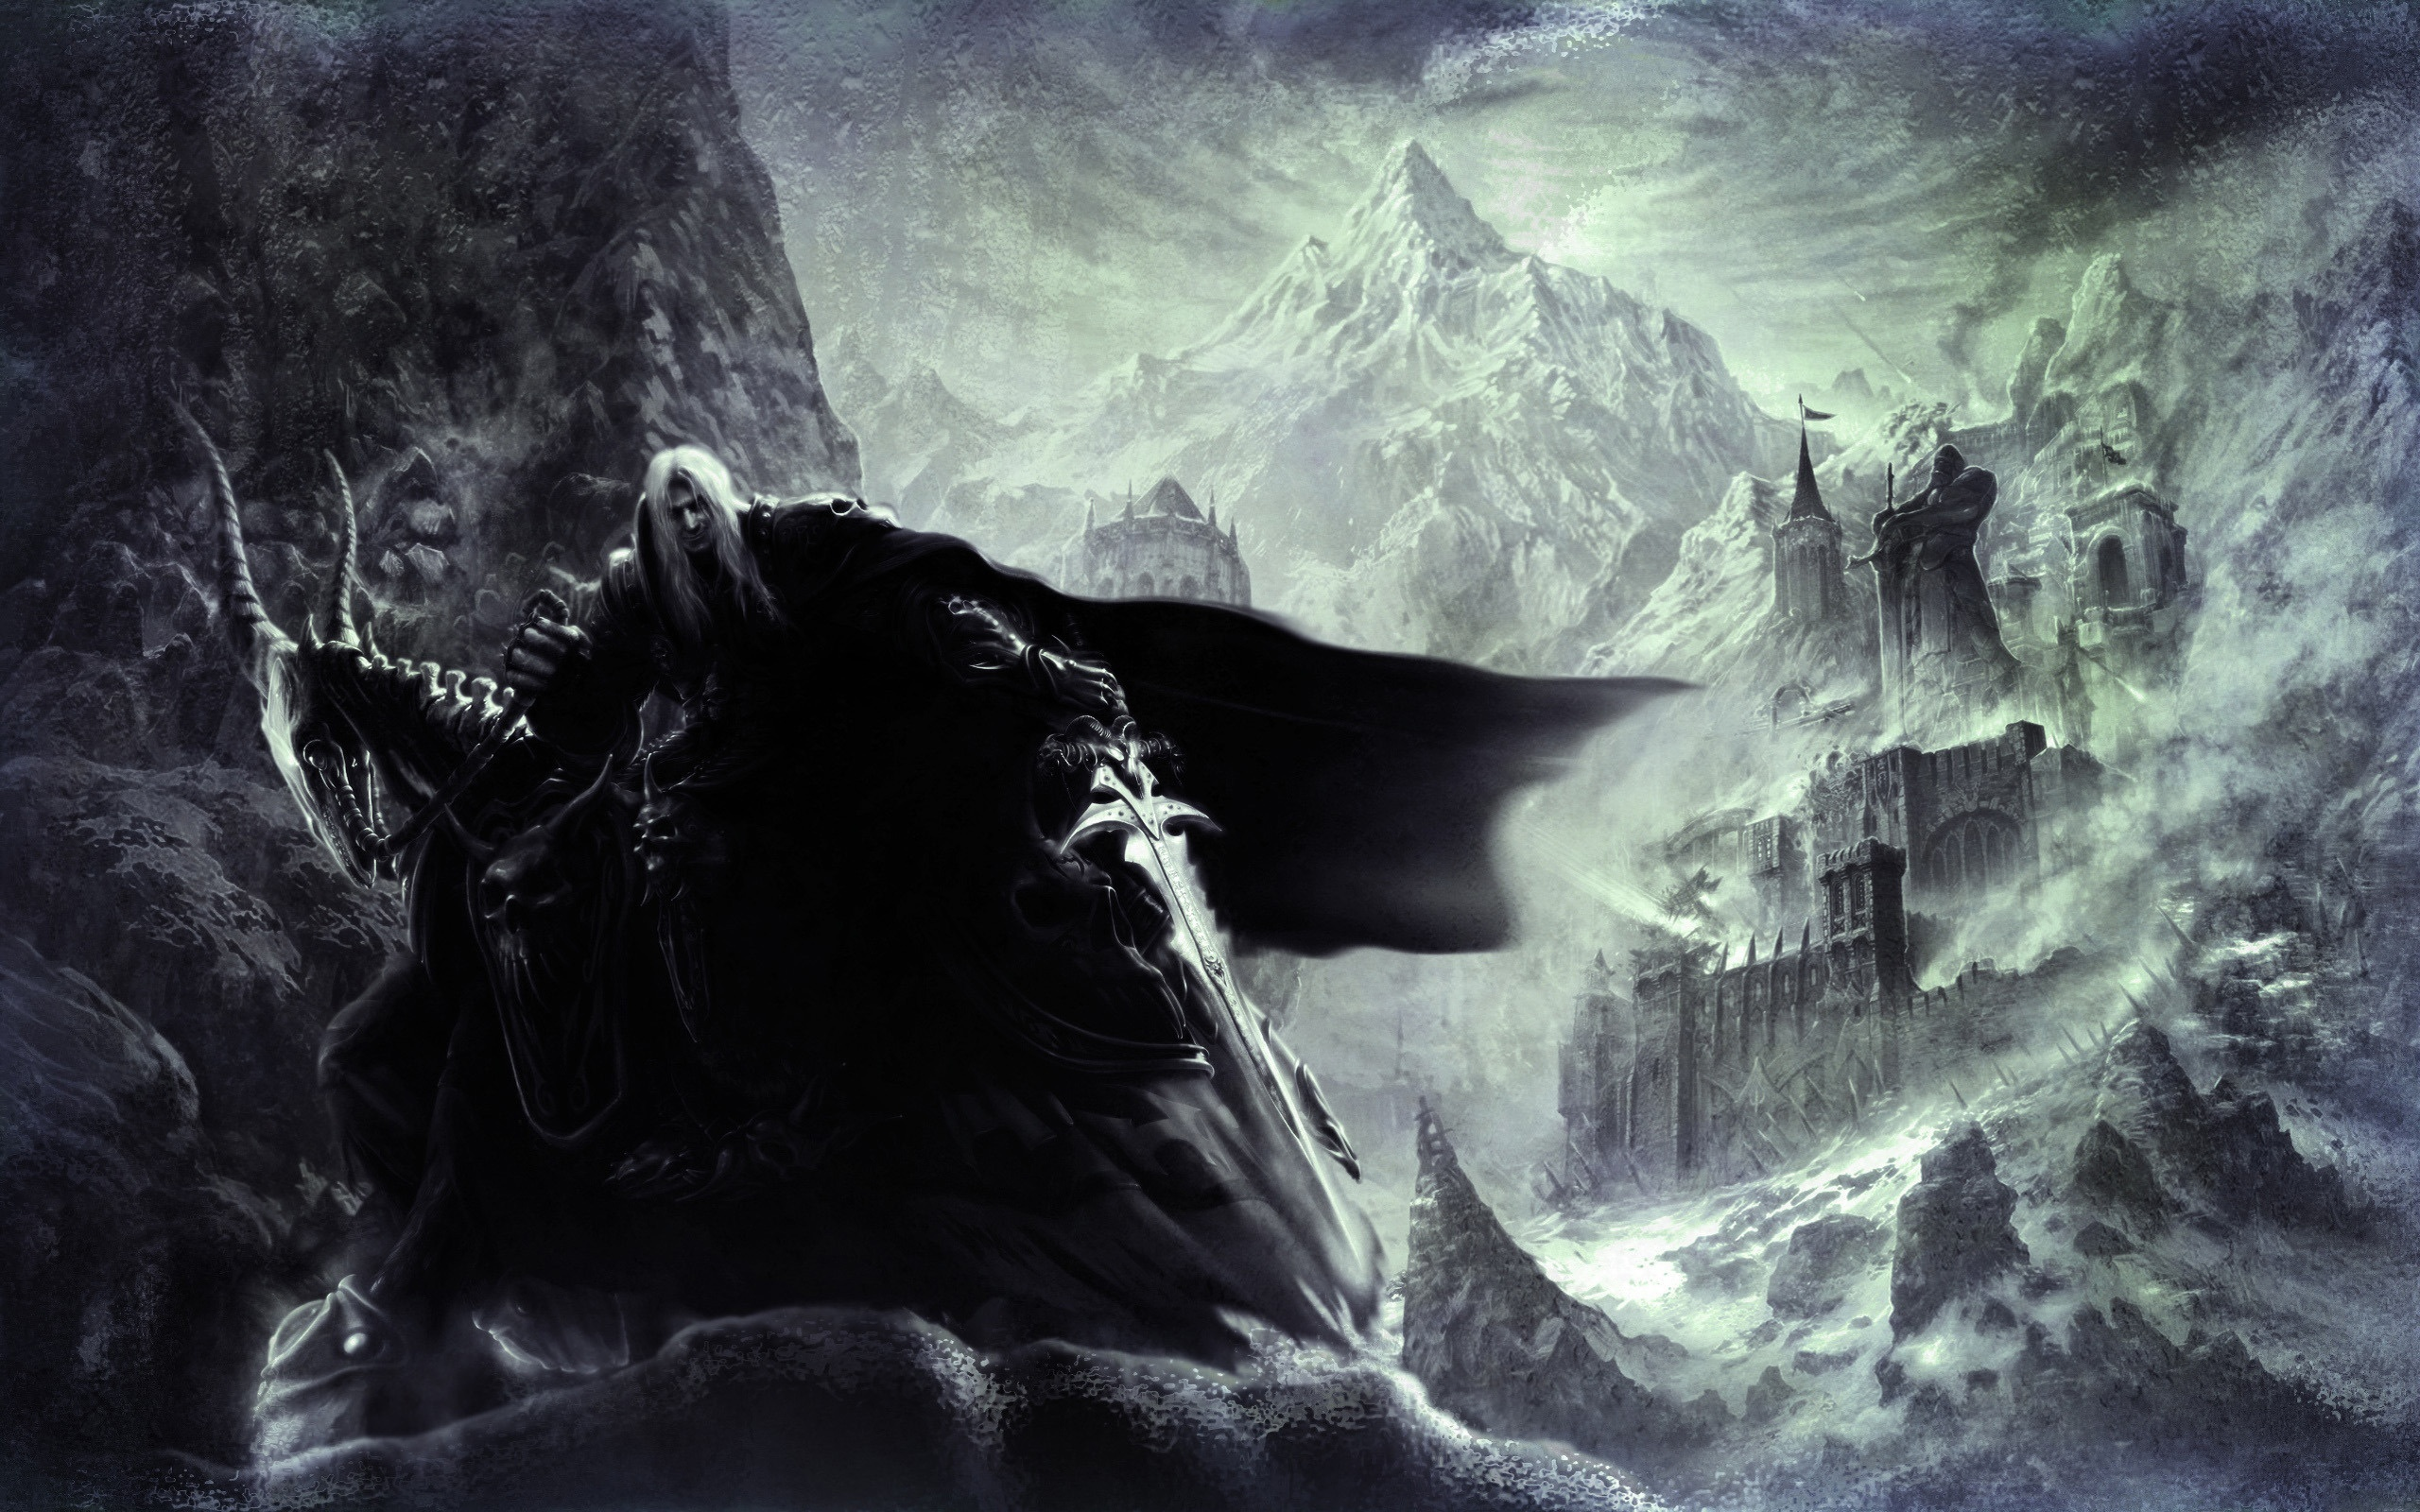 Lord of the Rings Wallpapers - 2560x1600 - 1398170